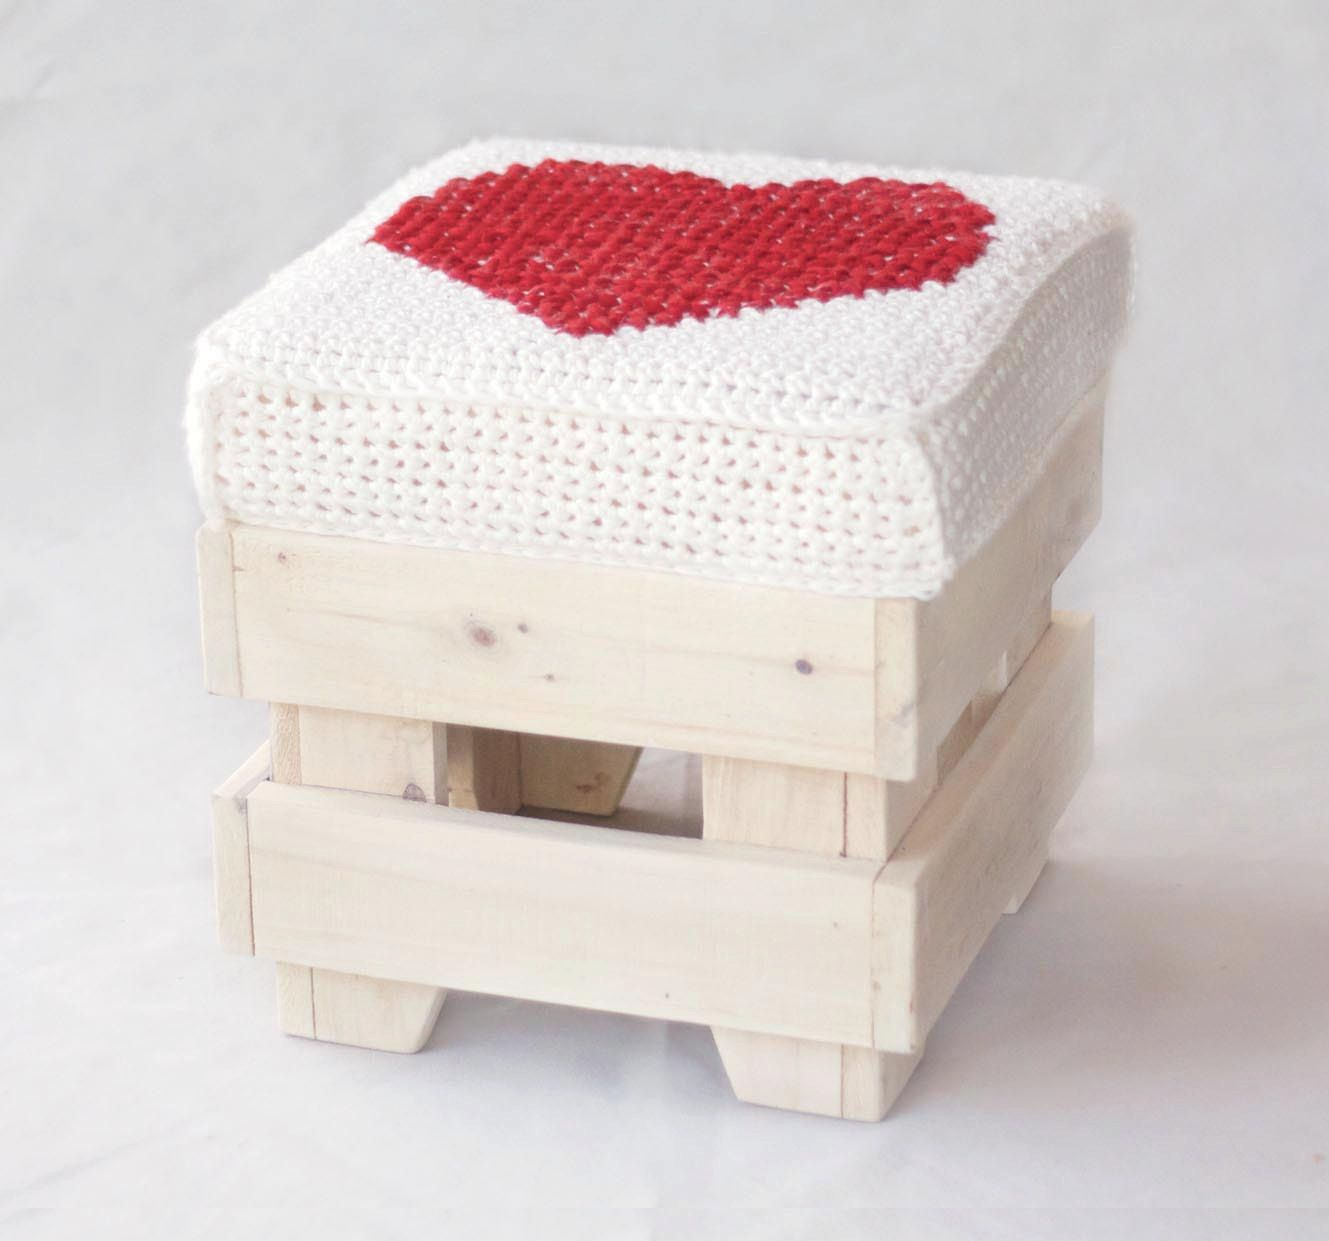 Heart pouf pillow stool cover (stool is made from an old pallet) - *Inspiration*